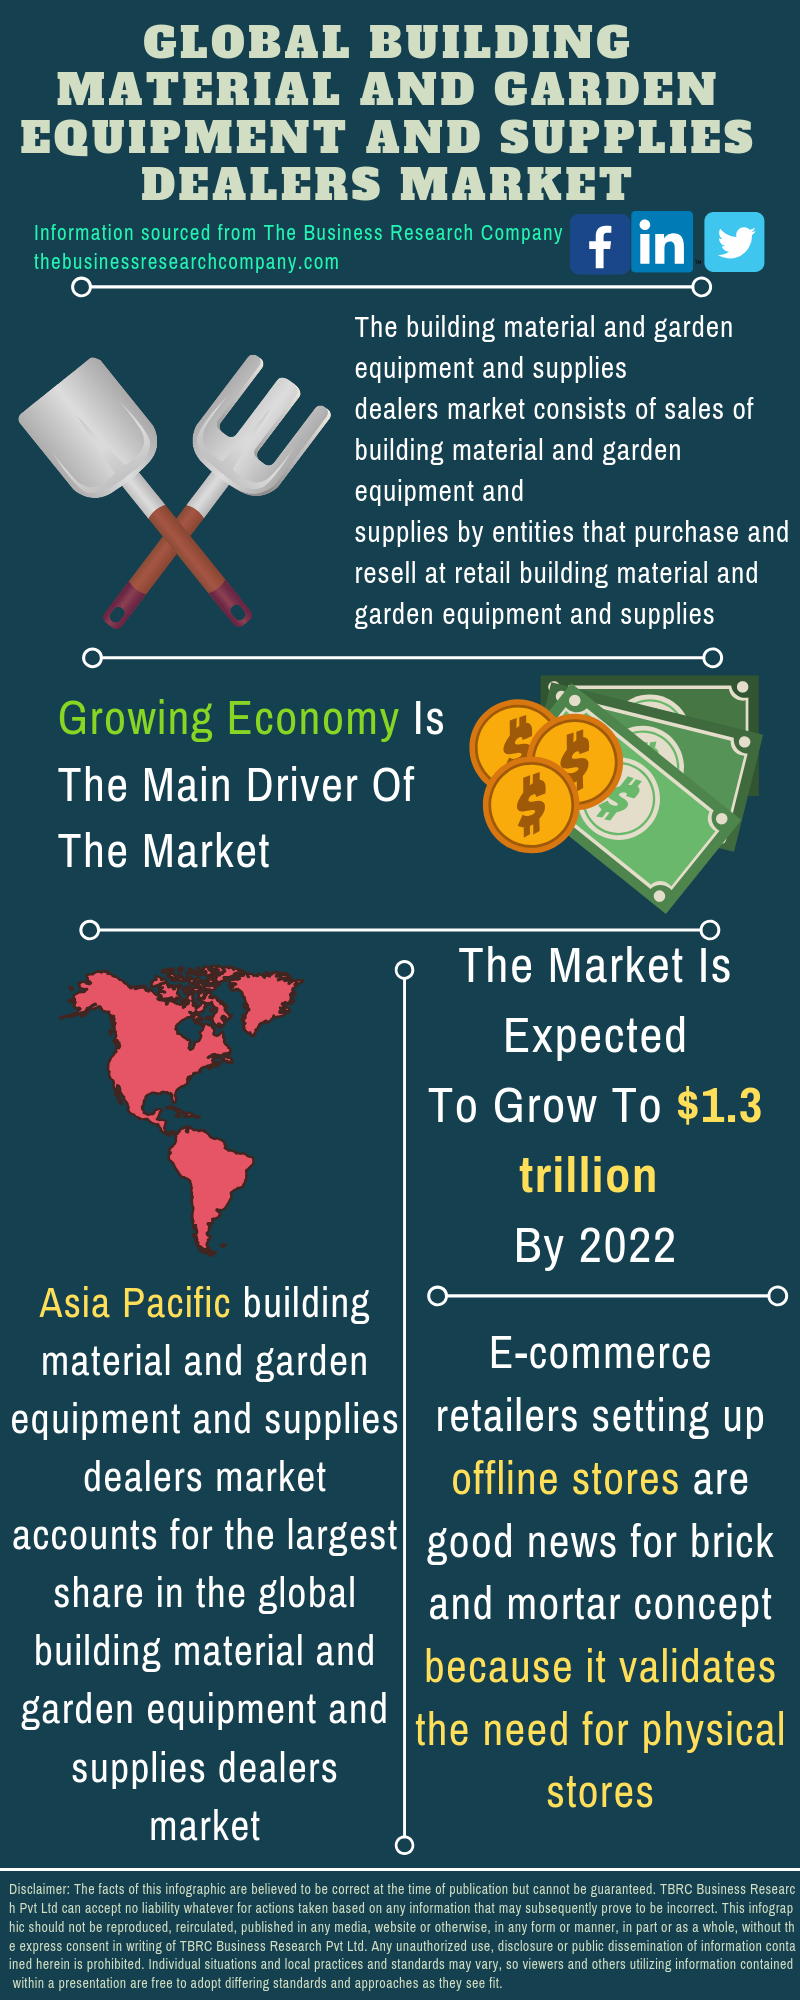 Building Material and Garden Equipment and Supplies Dealers Market